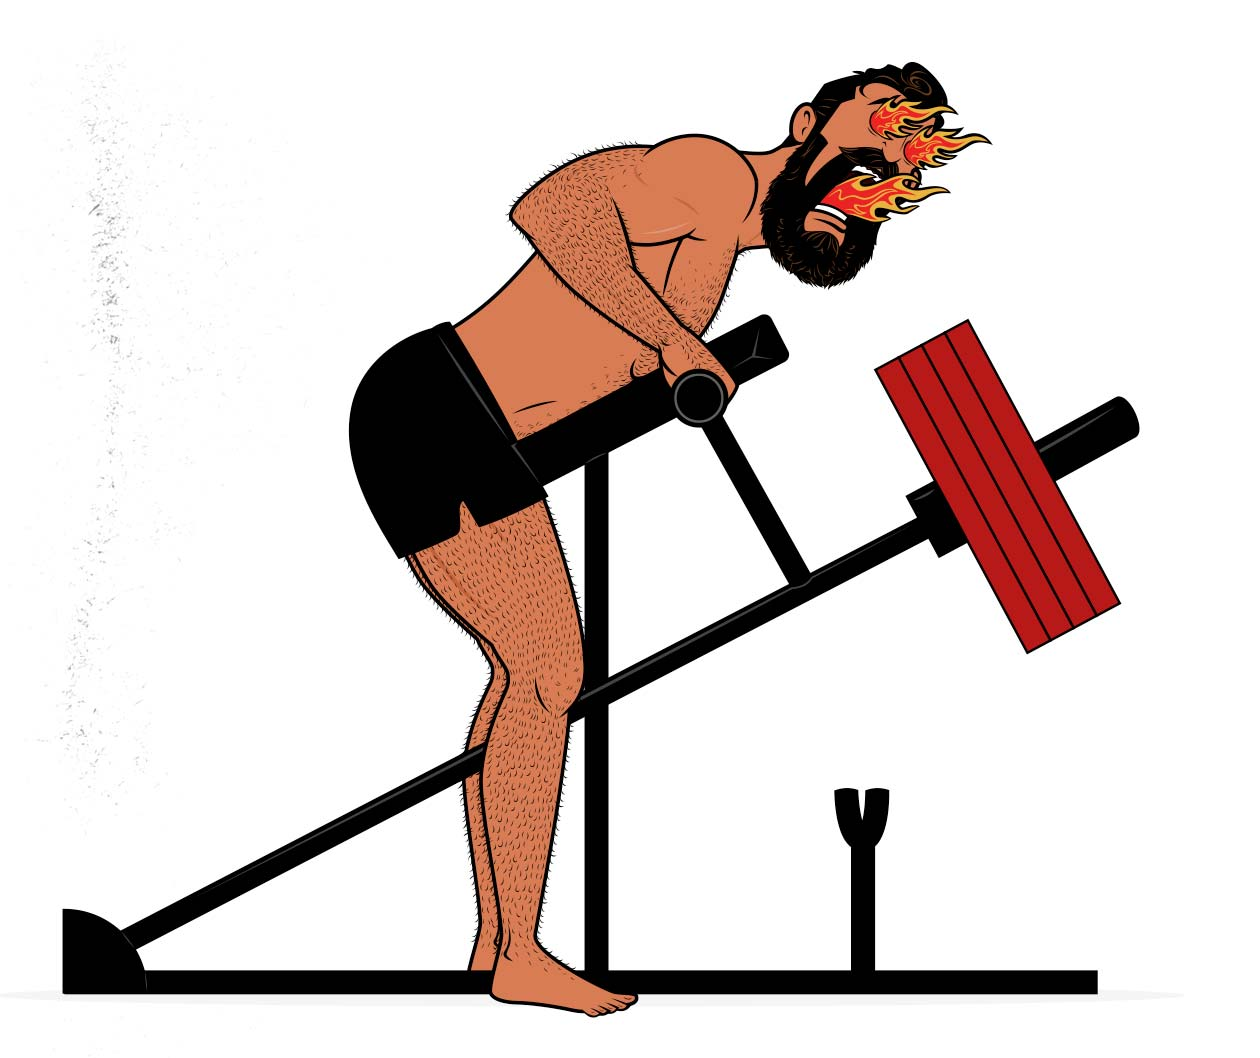 Illustration of a bodybuilder doing high-intensity training (HIT) to build muscle.